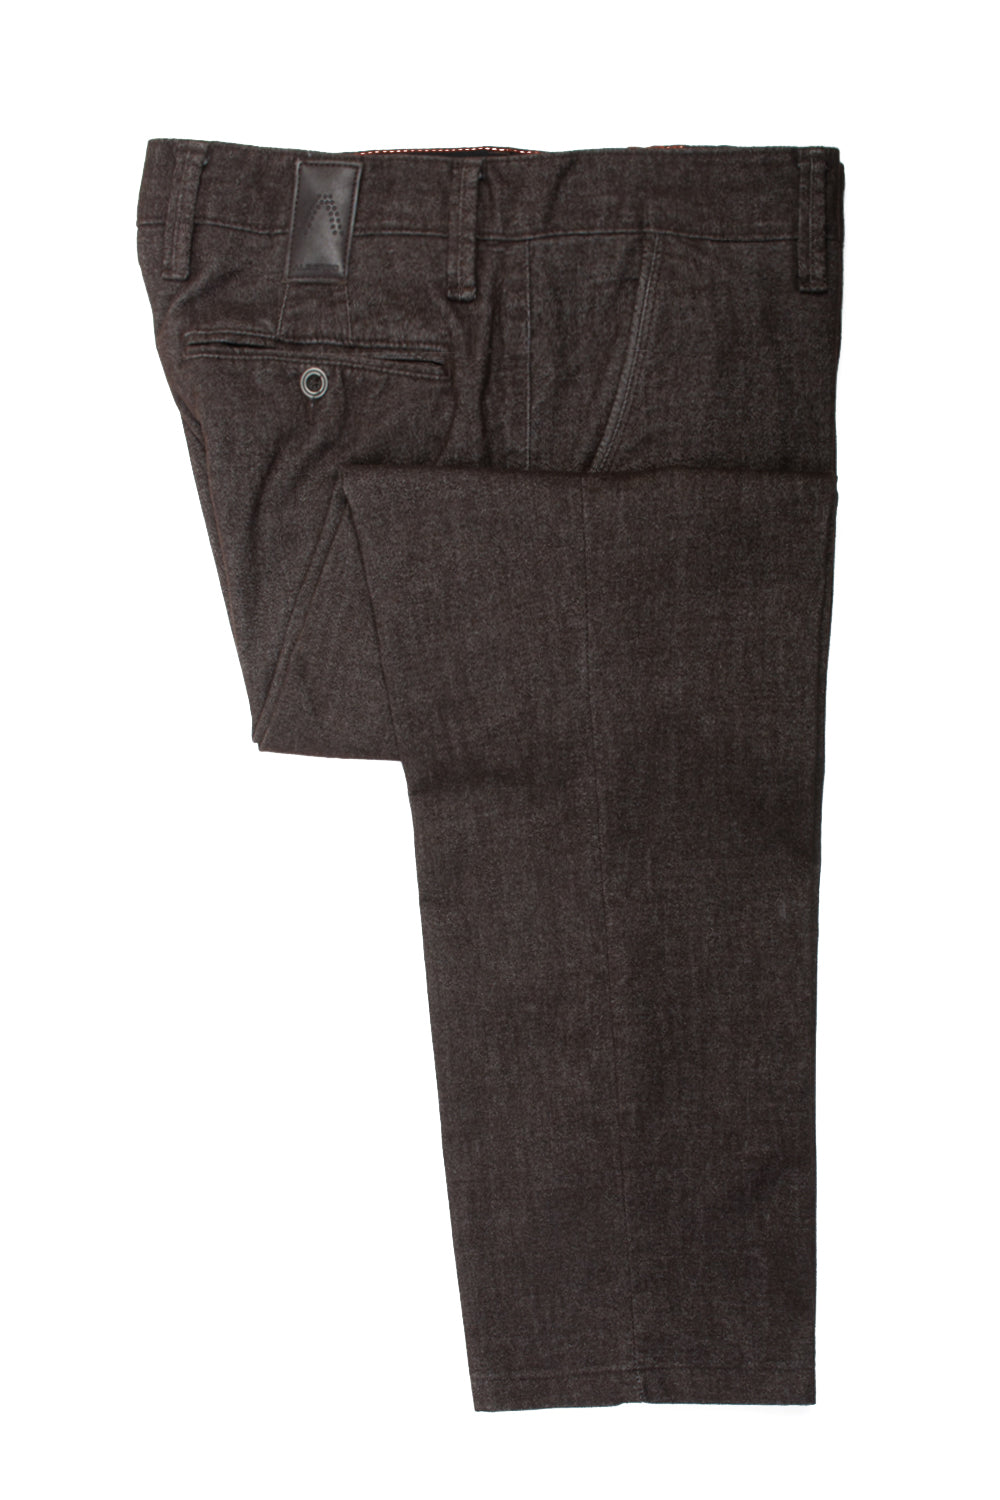 Alberto Brown Lou Regular Slim Fit Cotton Tweed Pants for Luxmrkt.com Menswear Consignment Edmonton